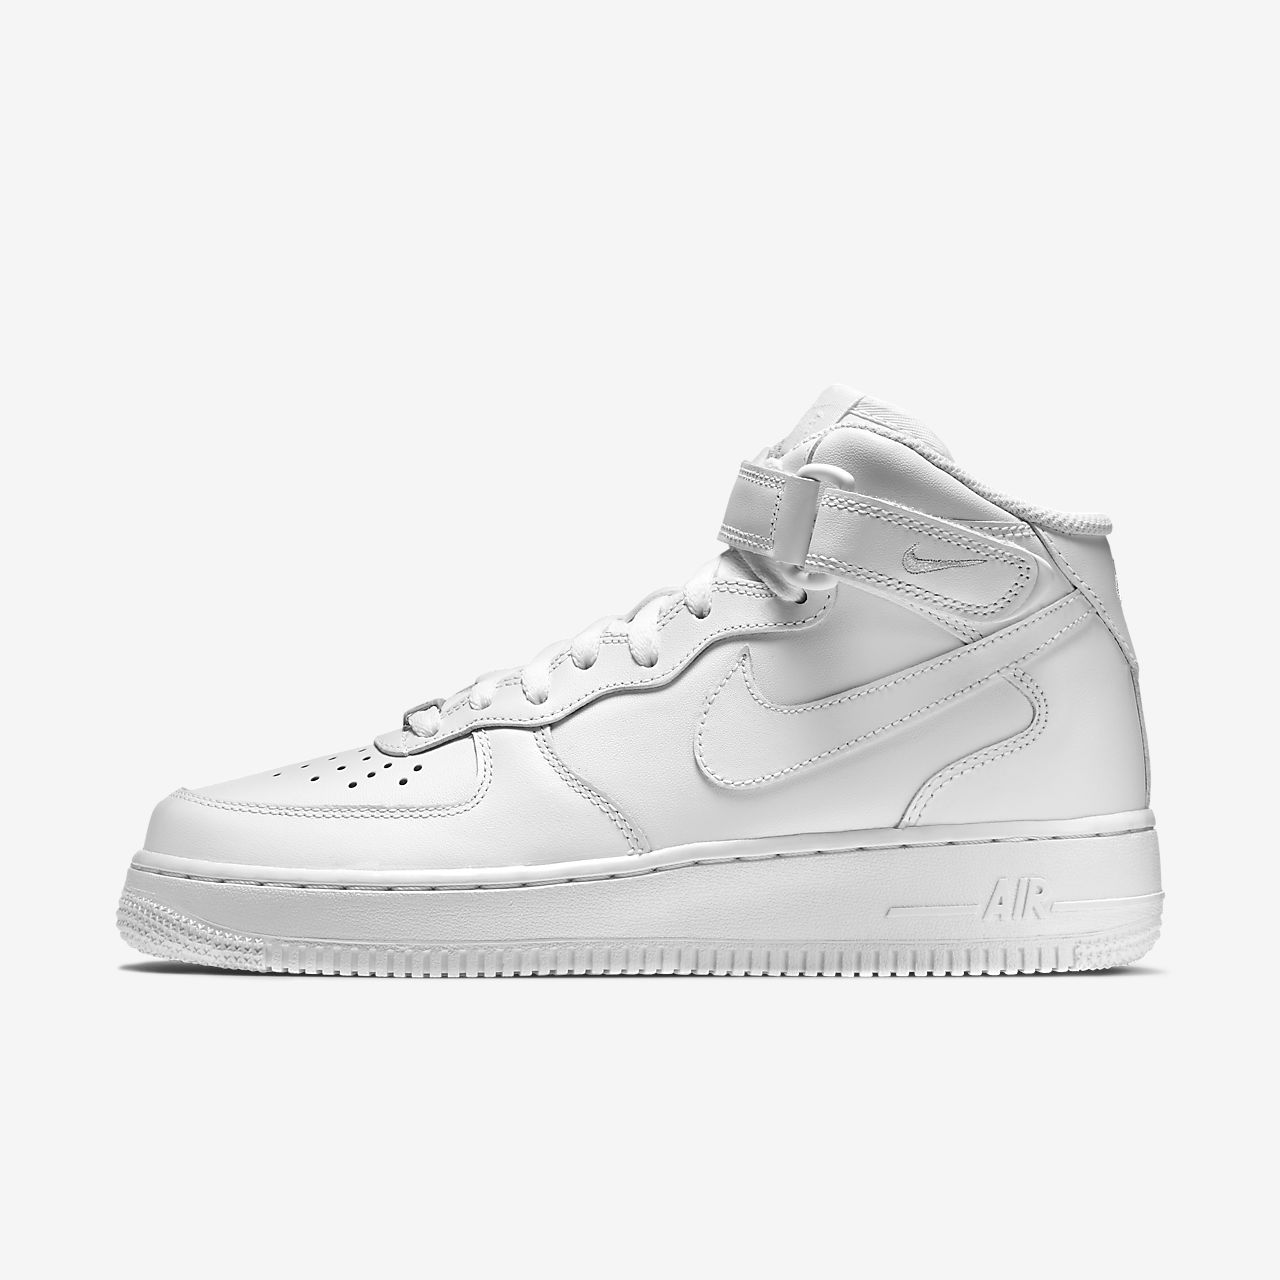 ... Nike Air Force 1 Mid '07 Women's Shoe